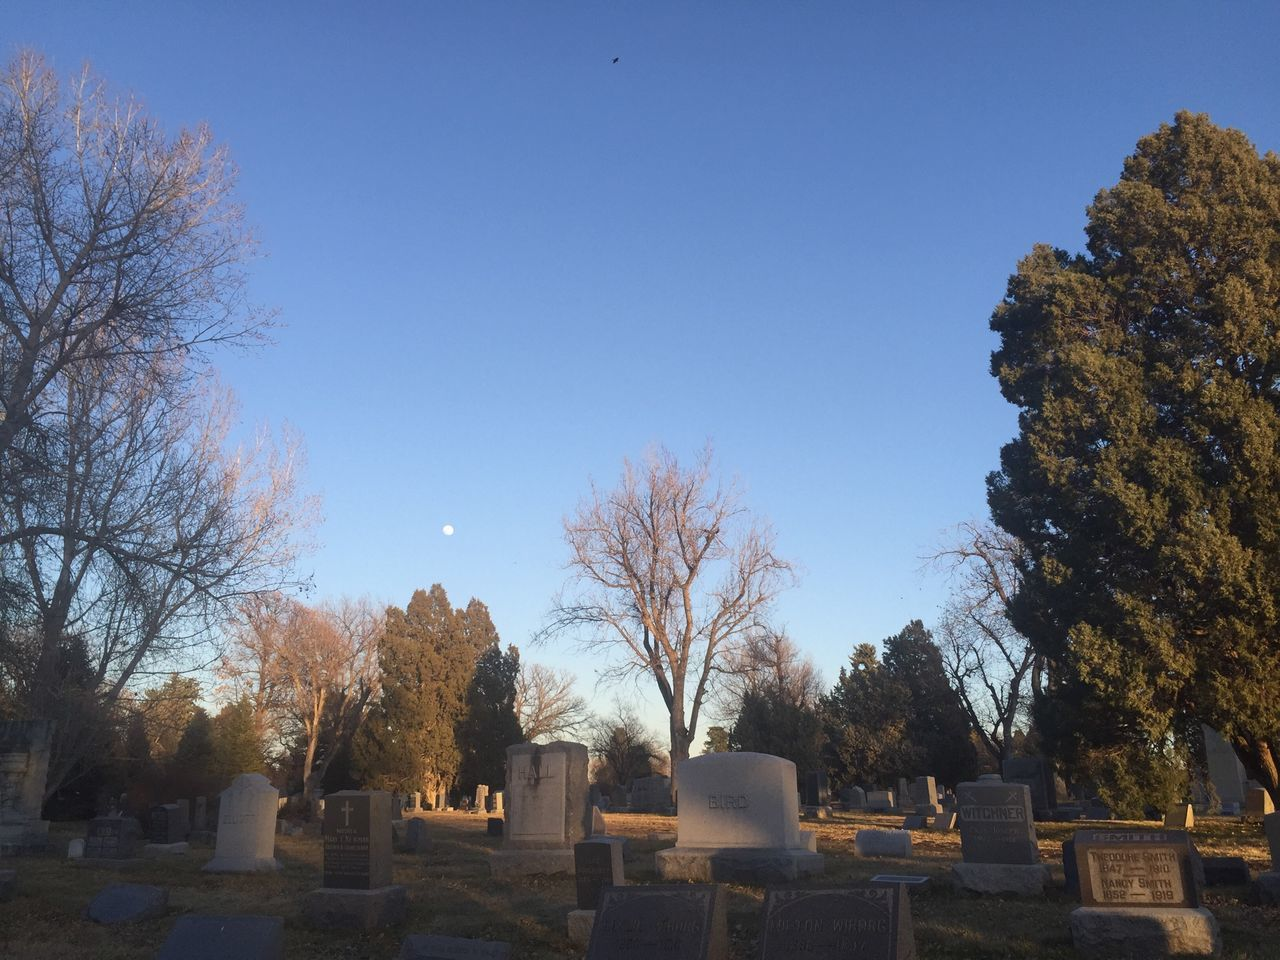 tombstone, cemetery, memorial, graveyard, gravestone, tree, the past, day, bare tree, nature, outdoors, no people, clear sky, tranquility, grave, sky